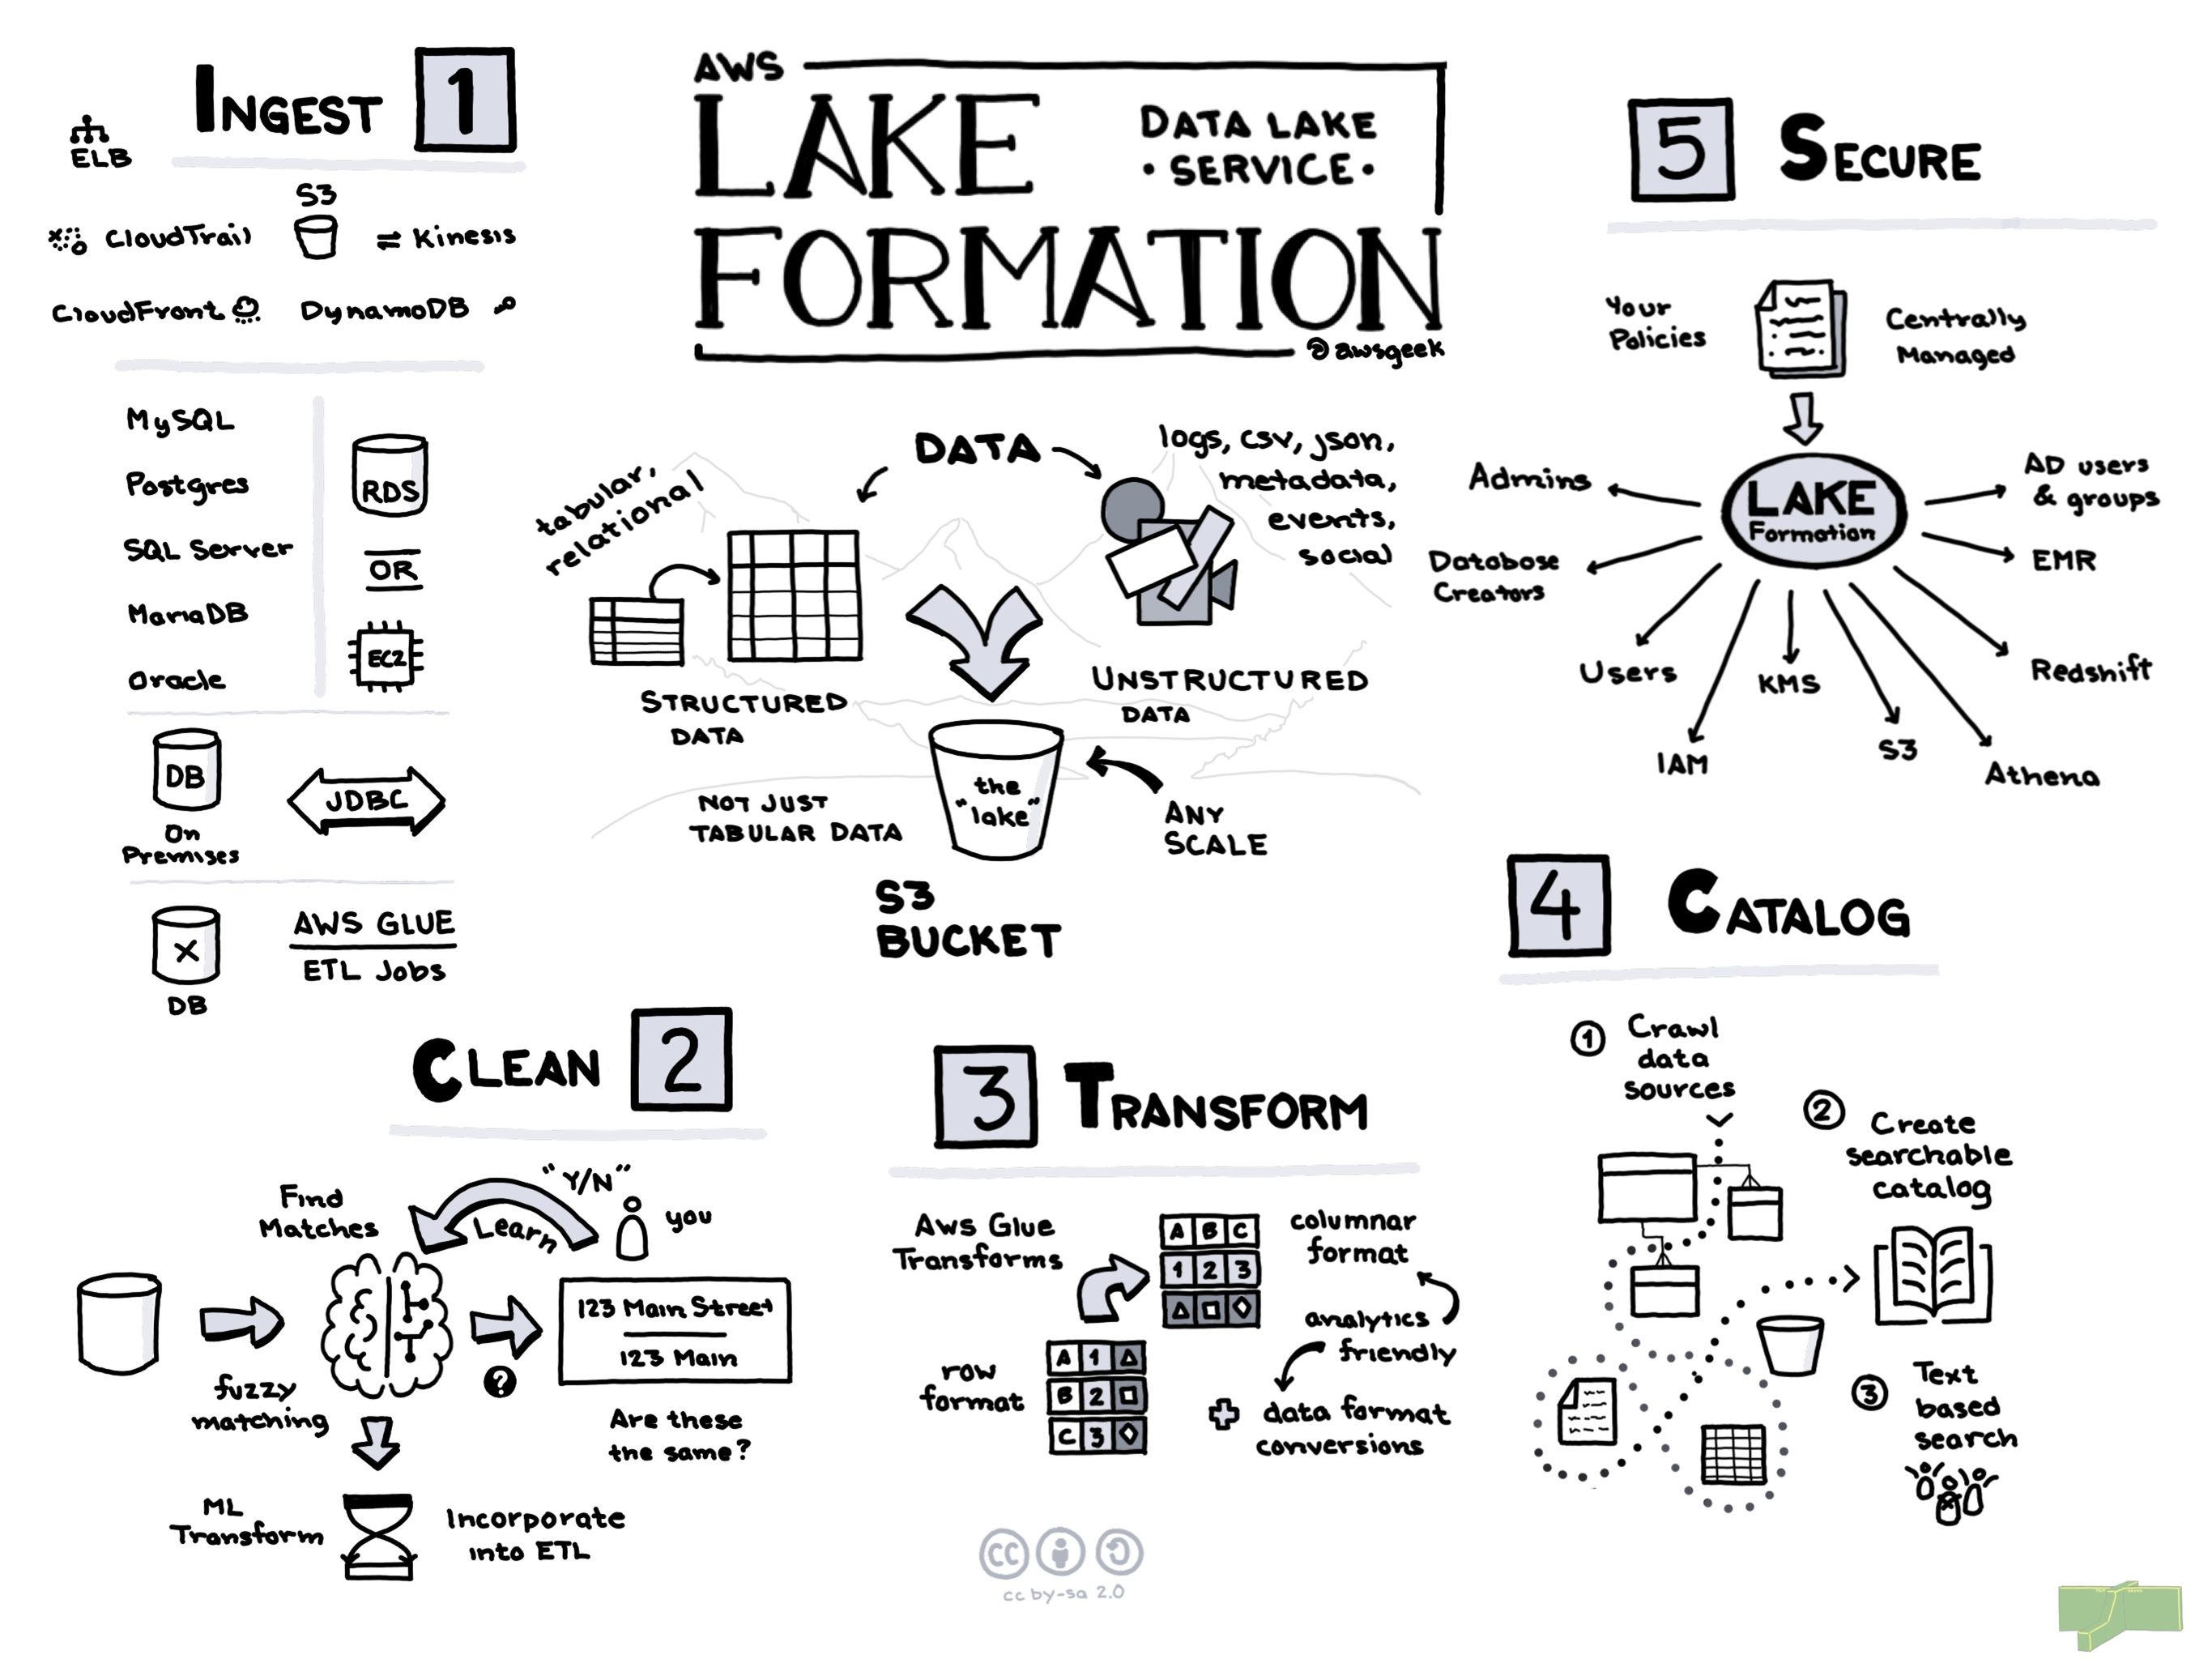 AWS-Lake-Formation.jpg